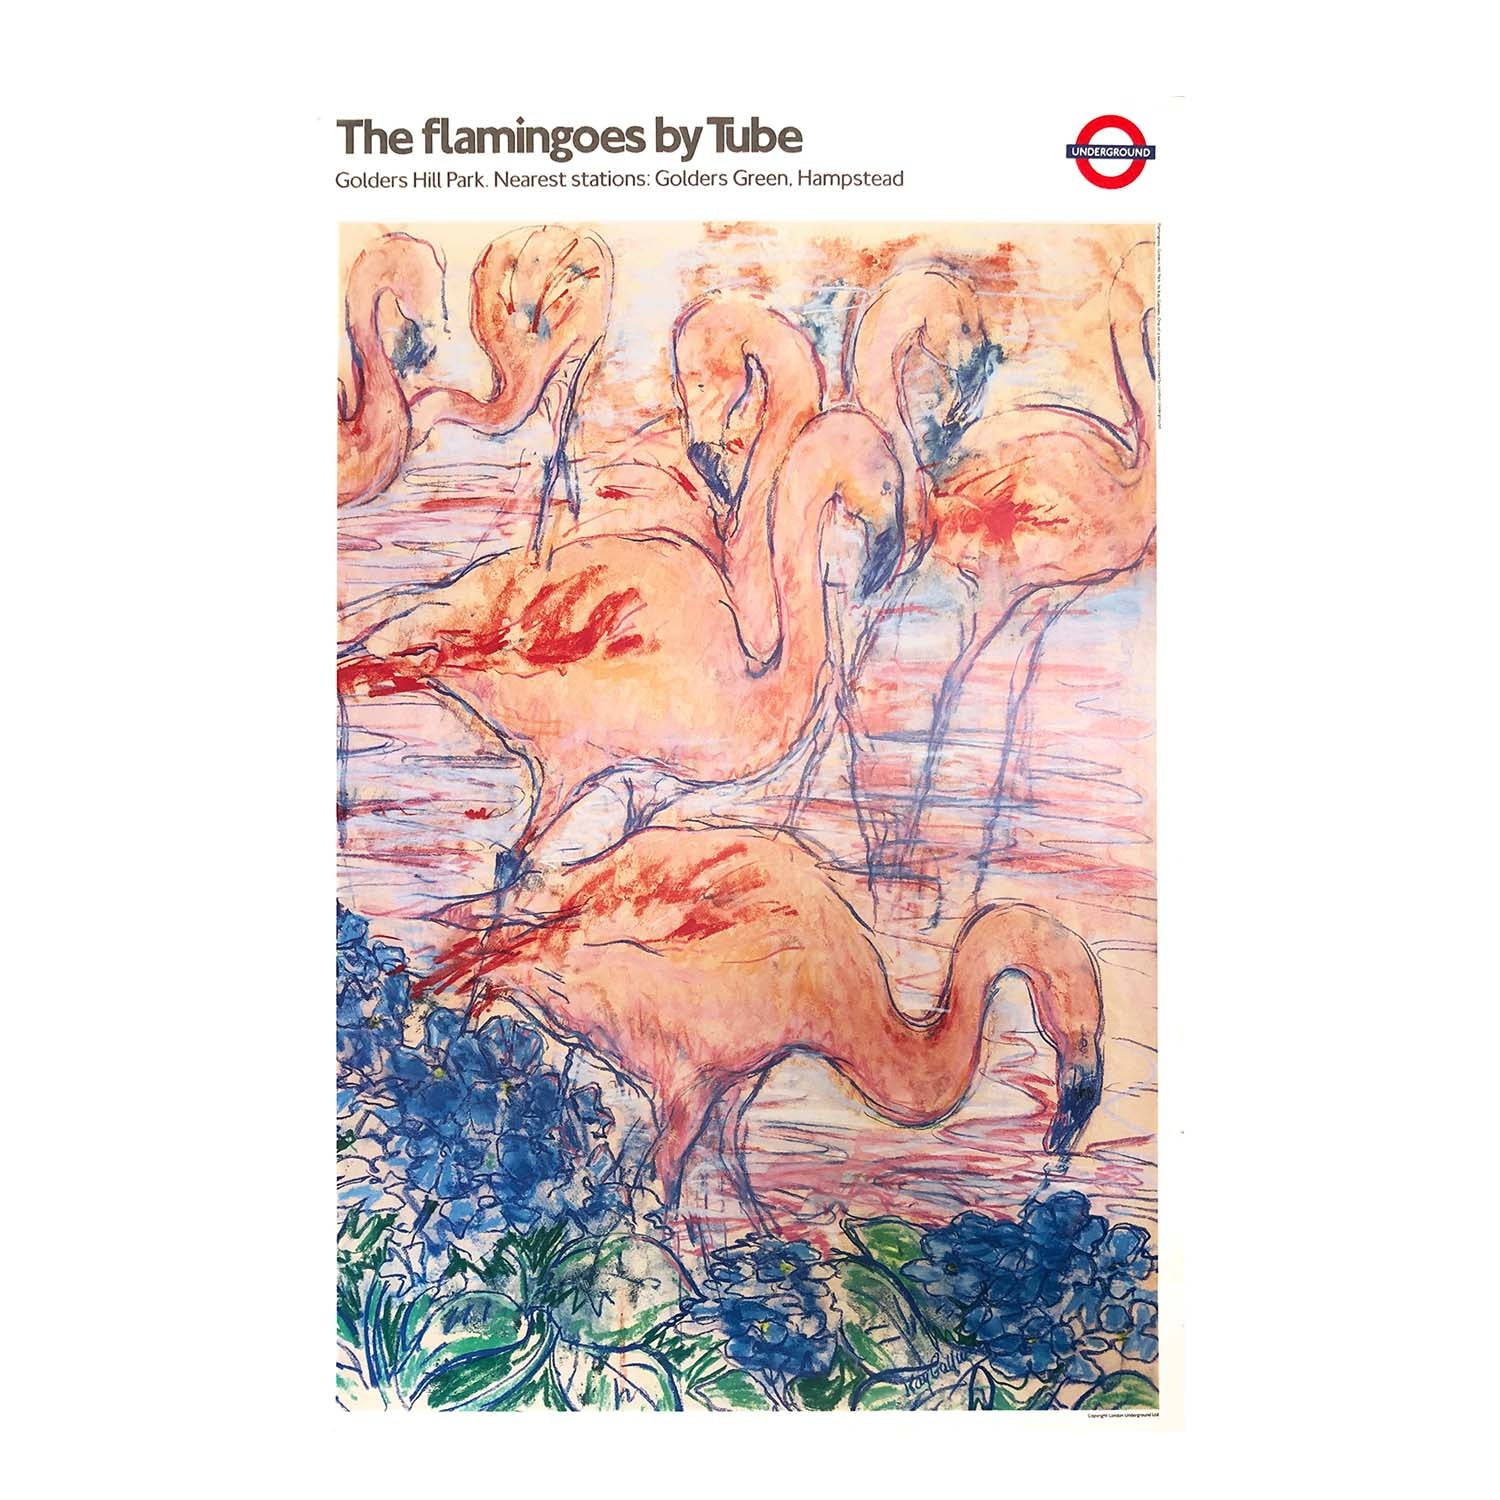 Original 1987 London Underground poster, flamingos at Golders Hill Park in north west London